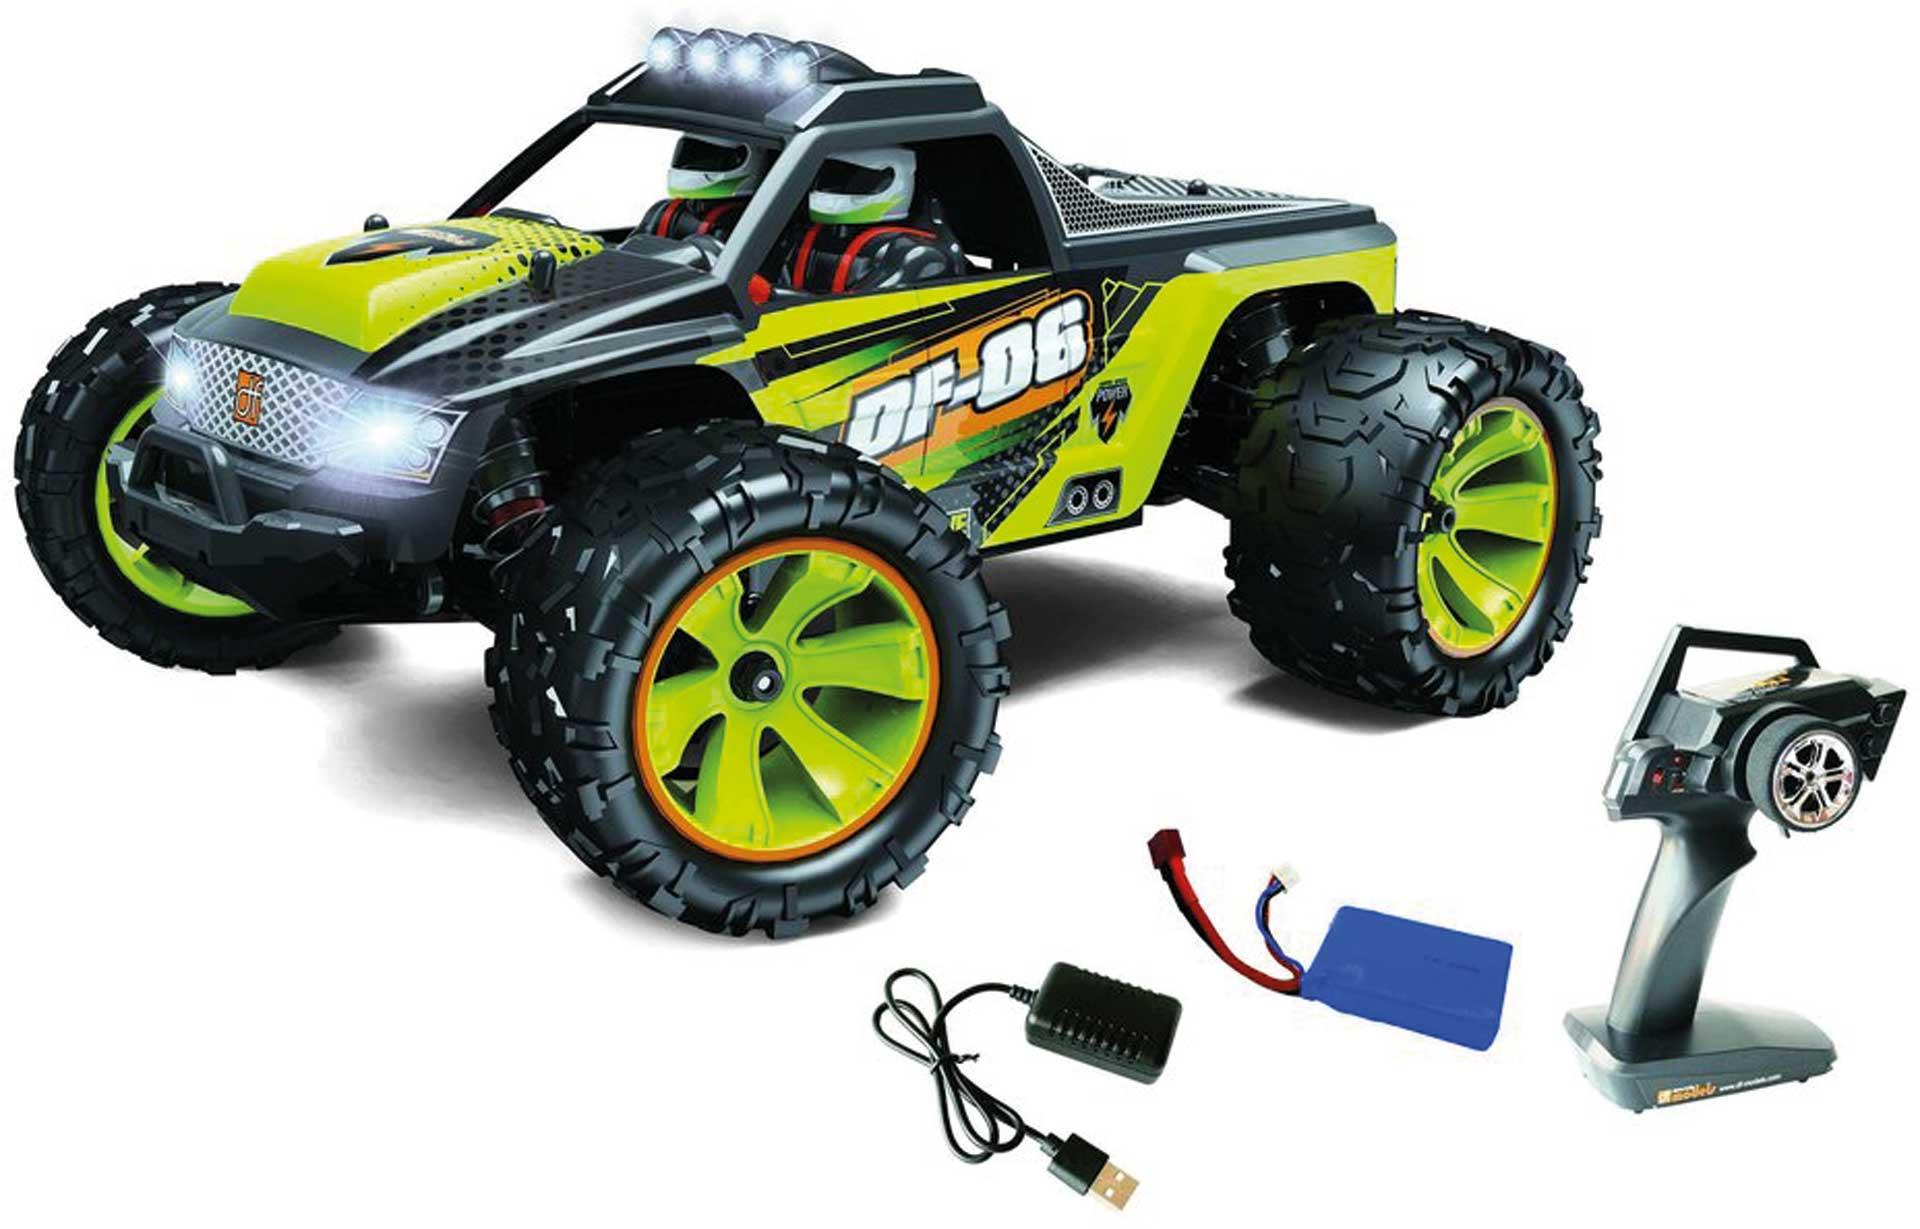 DRIVE & FLY MODELS DF06 Evolution 1/14 RTR Truck EP 4WD